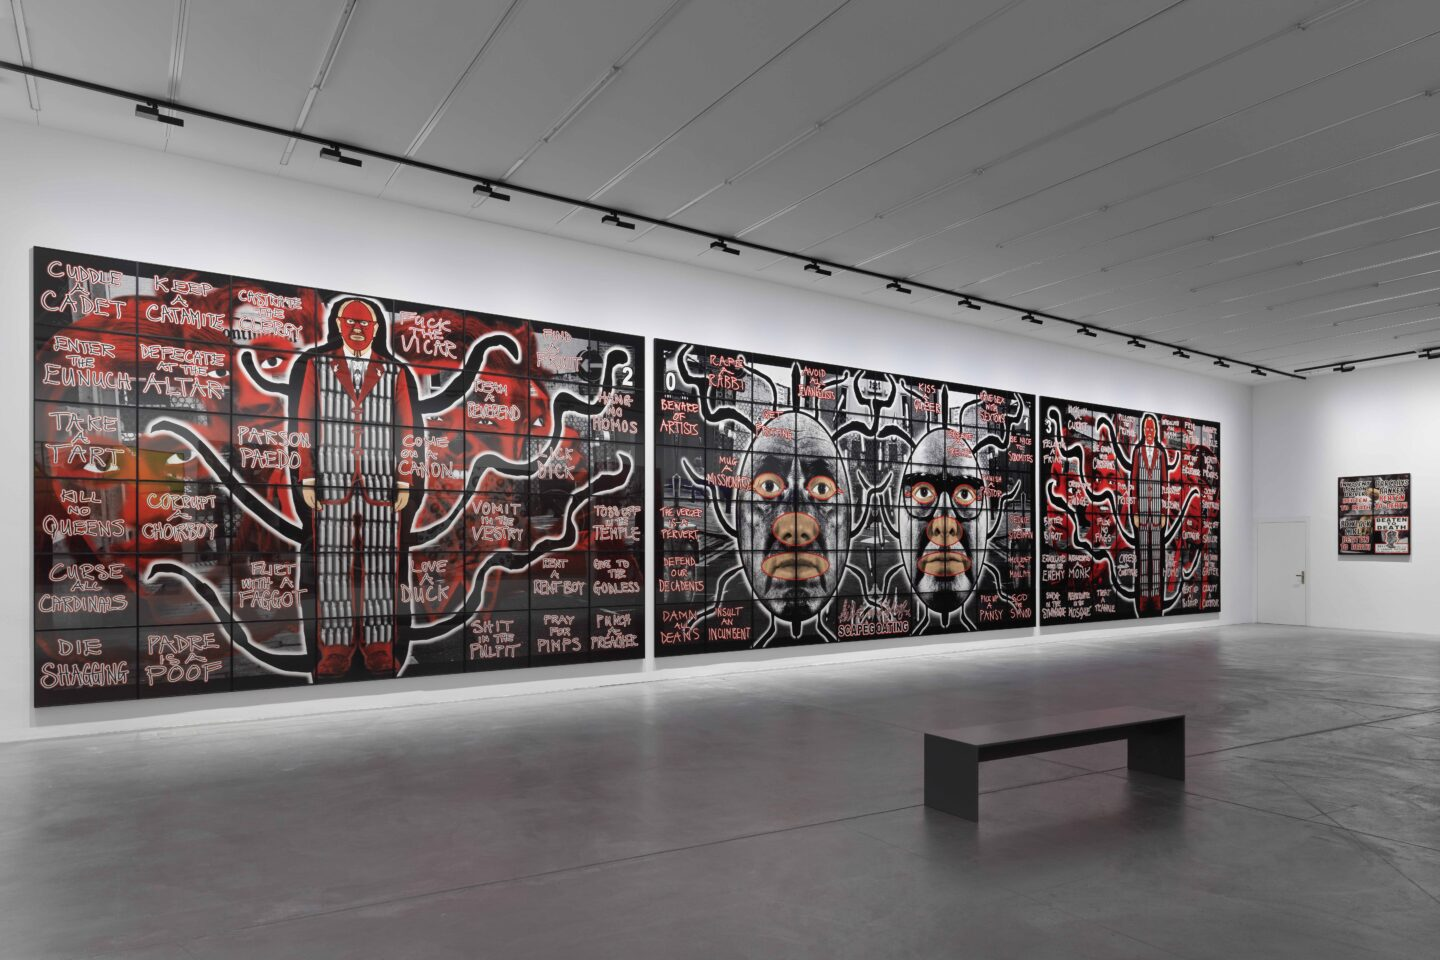 Exhibition View Gilbert & George «THE GREAT EXHIBITION, 1971–2016» at Kunsthalle Zürich & Luma Westbau, Zurich, 2020 / Photo: Stefan Altenburger / Courtesy: the artists, Kunsthalle Zürich & Luma Westbau